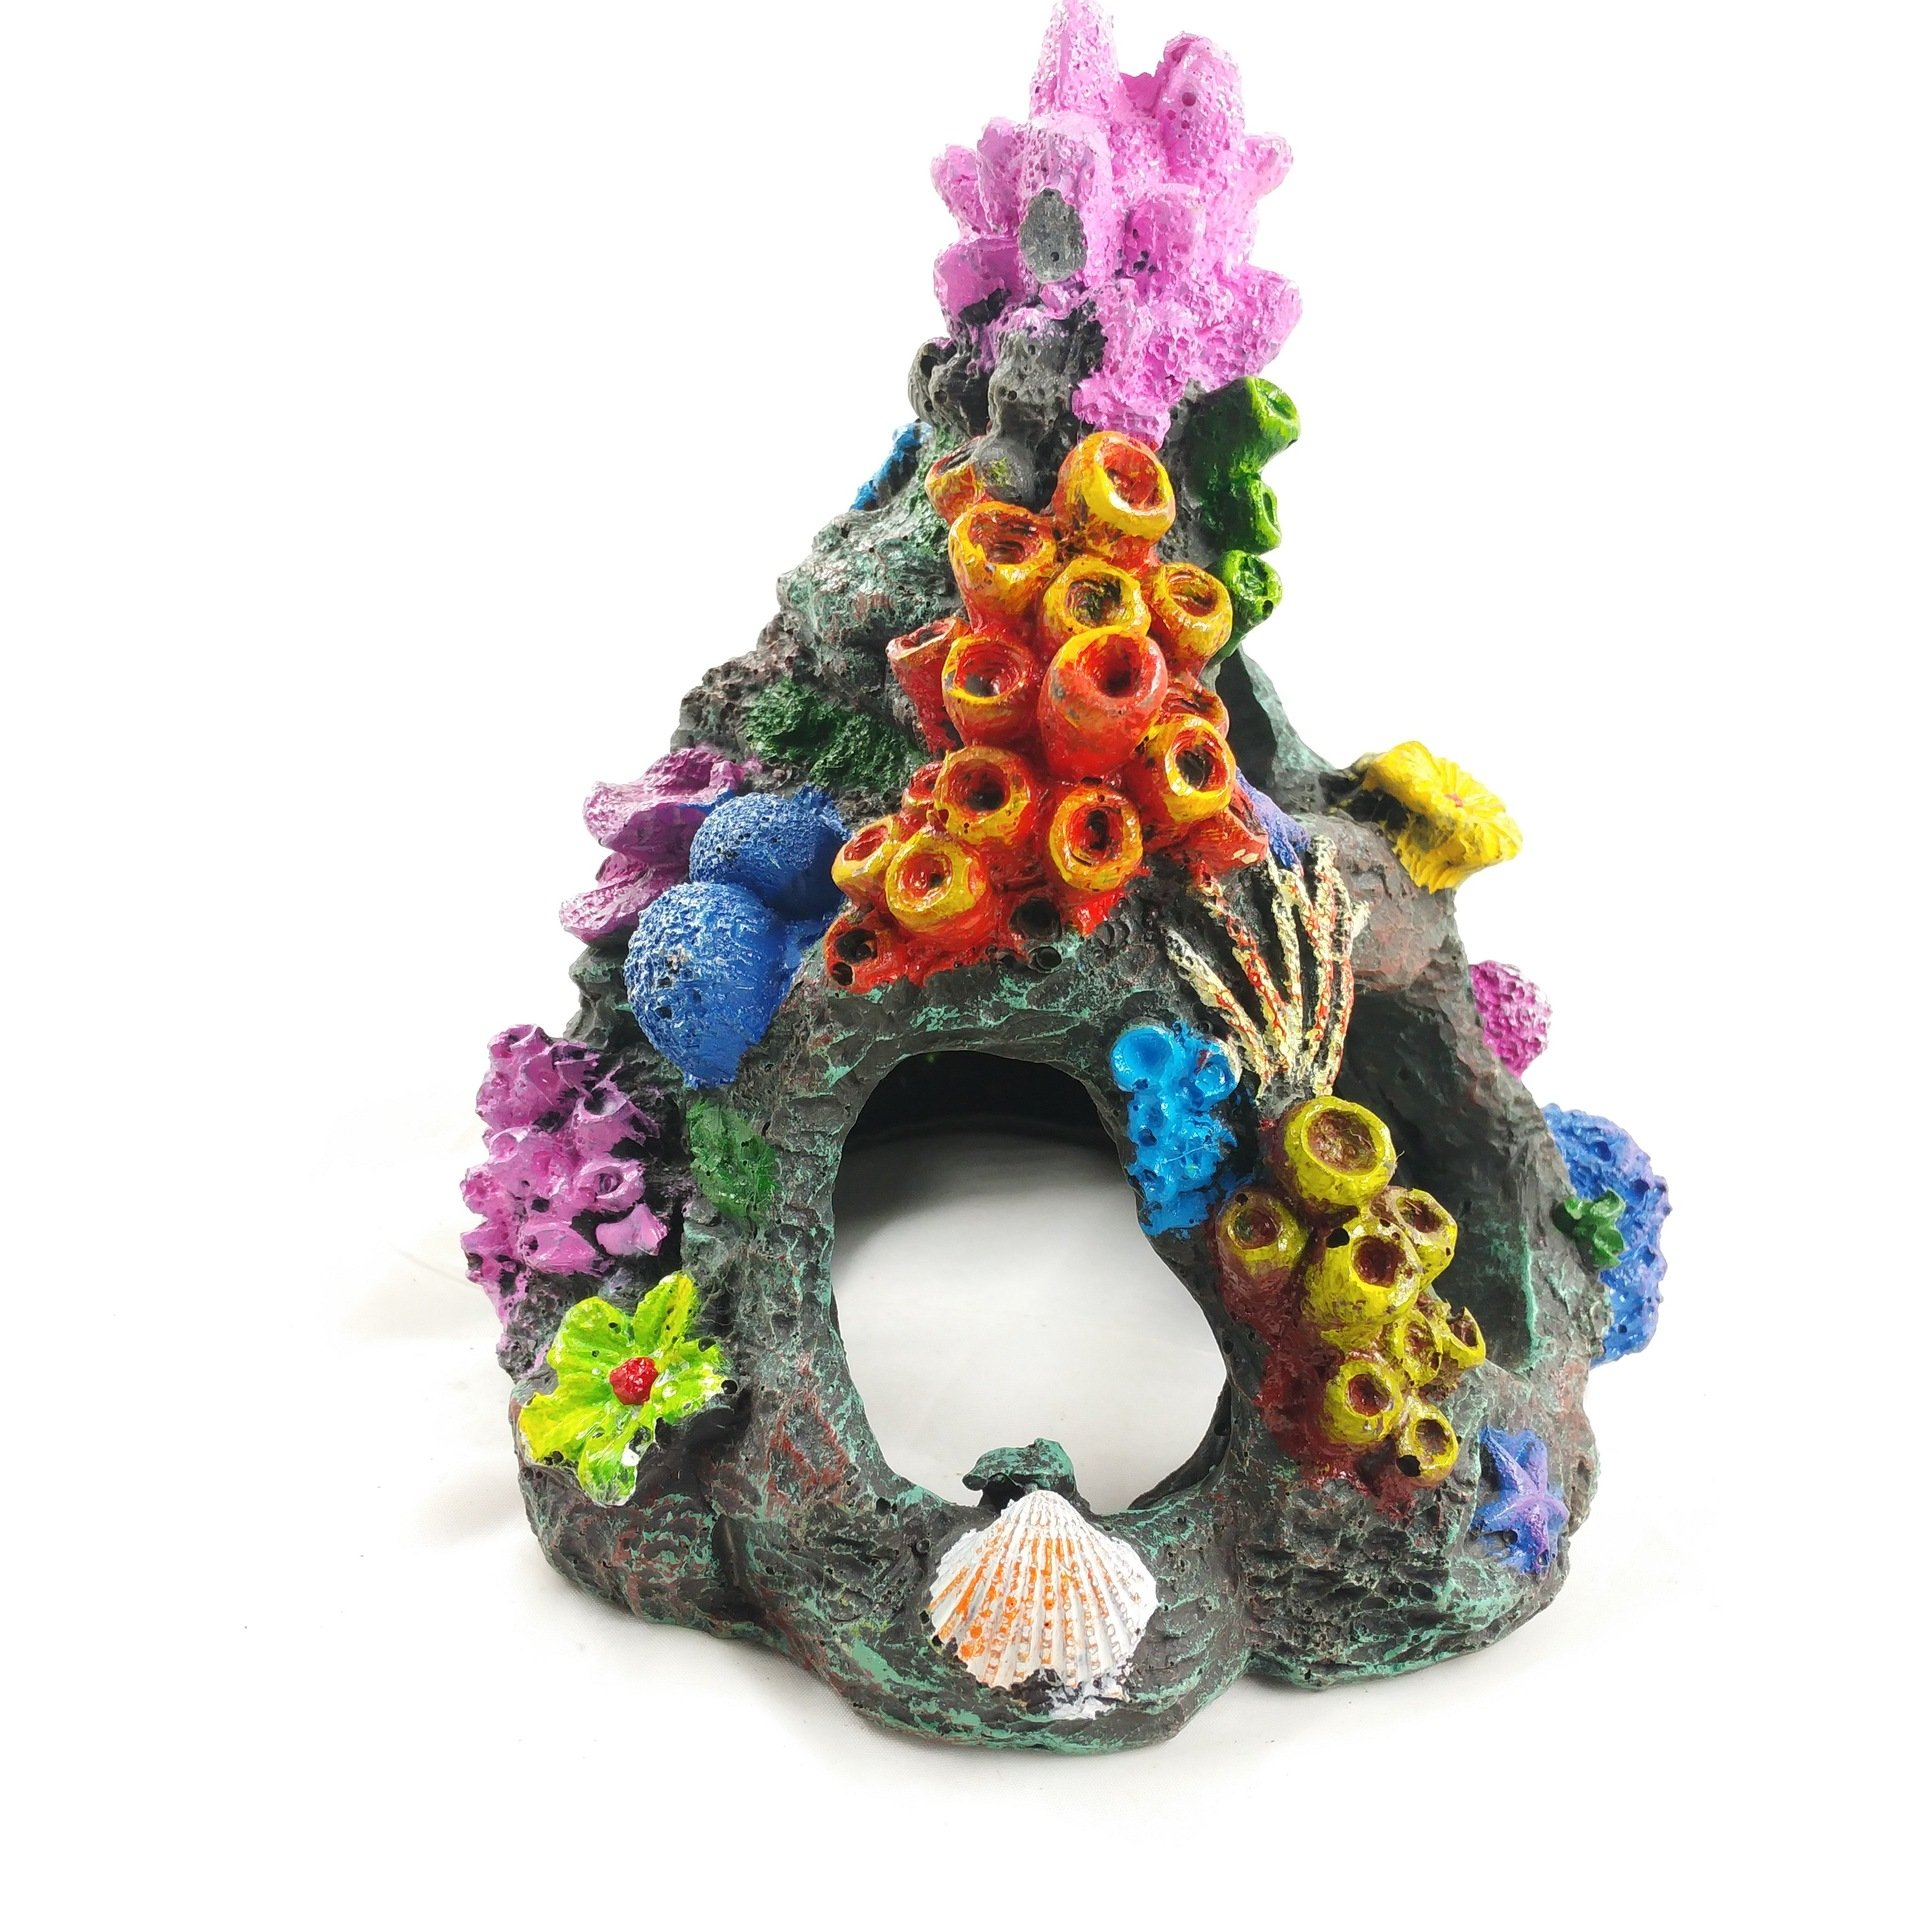 Stock Show 1Pc Polyresin Colorful Simulation Coral Rockery Aquarium Ornament Fish Hiding Cave Decoration Fish Tank Landscaping